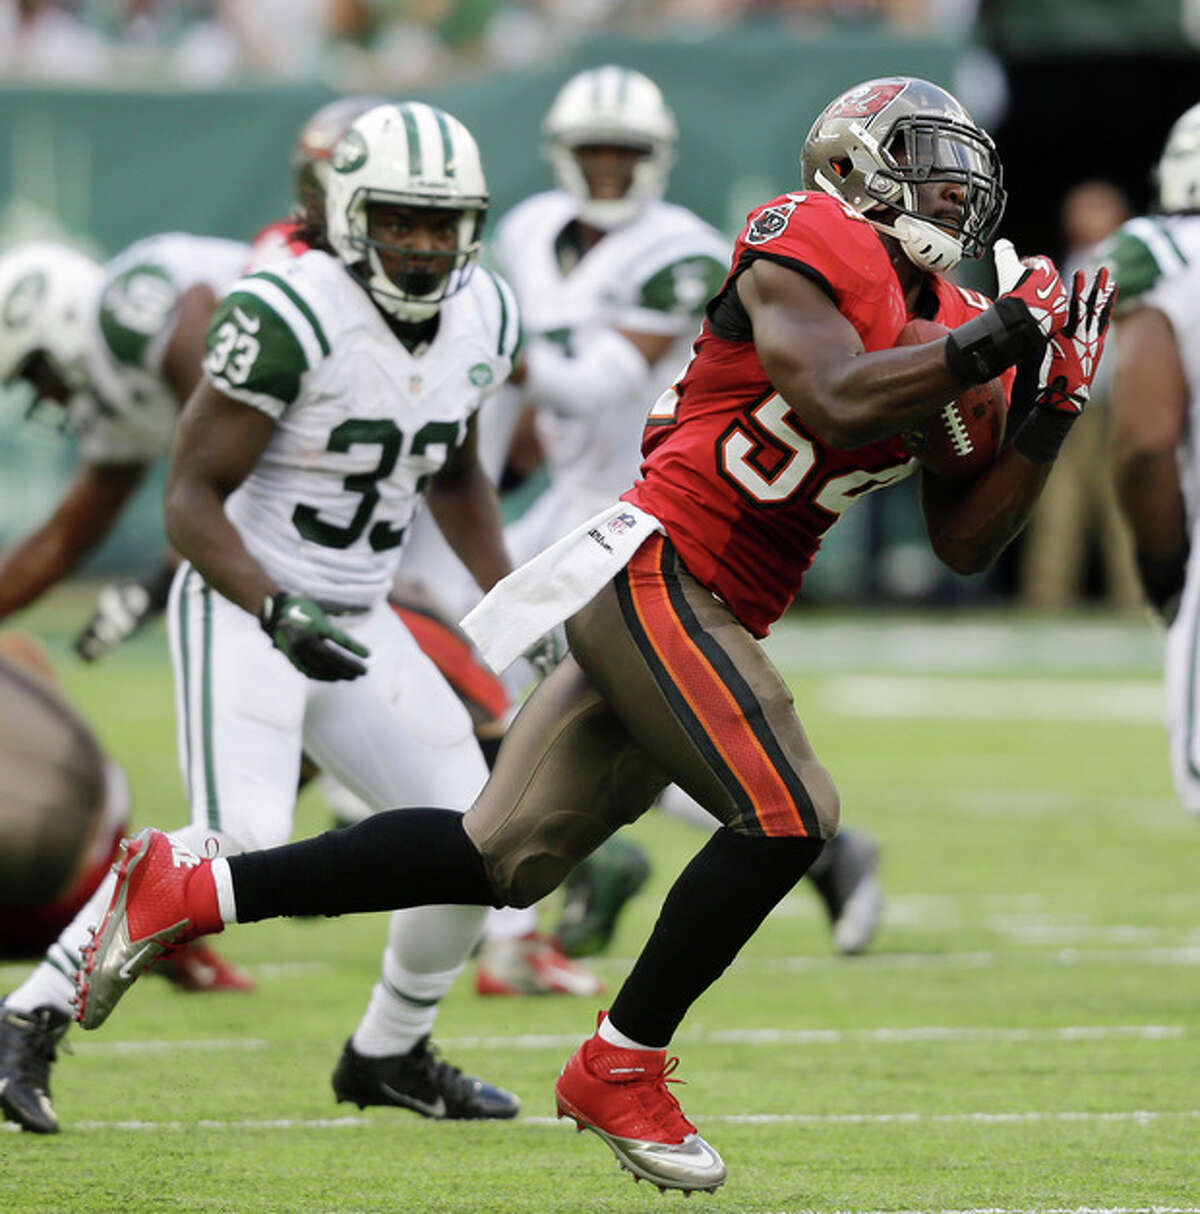 Tampa Bay Buccaneers outside linebacker Lavonte David (54) makes an interception on a pass by New York Jets quarterback Geno Smith in the first half of an NFL football game, Sunday, Sept. 8, 2013, in East Rutherford, N.J. (AP Photo/Mel Evans)